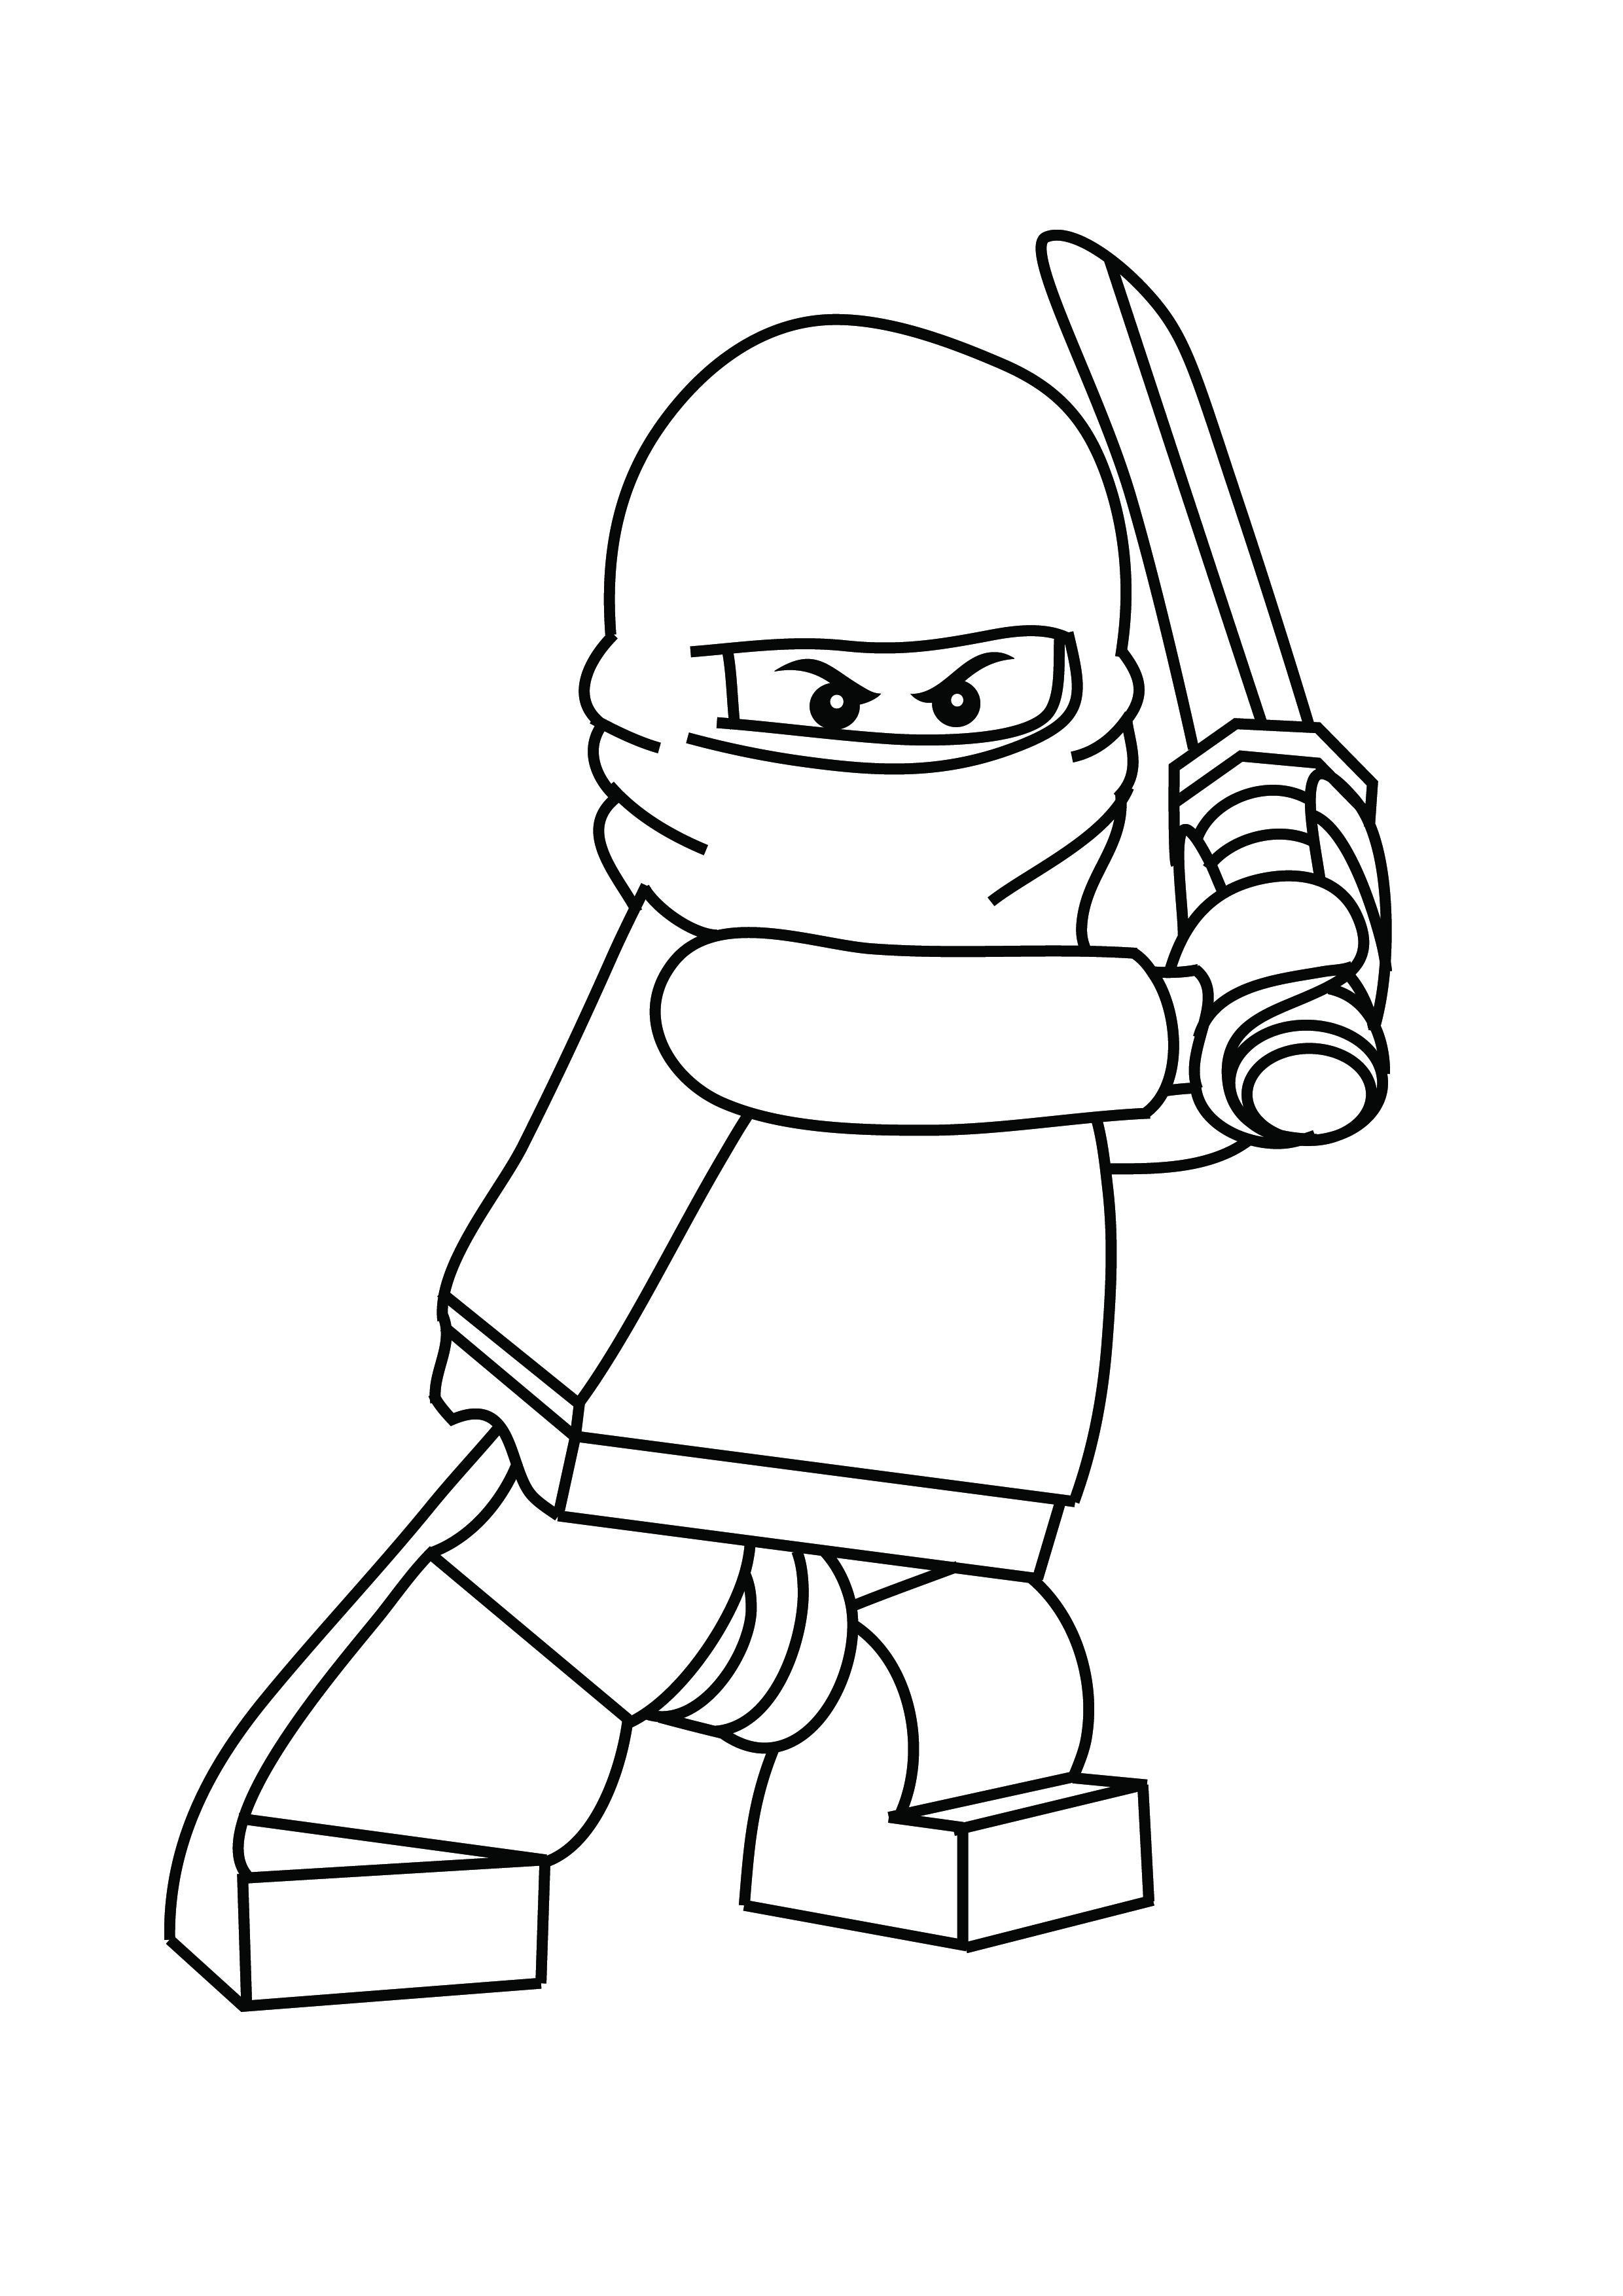 lego color sheet free printable lego coloring pages for kids color sheet lego 1 2